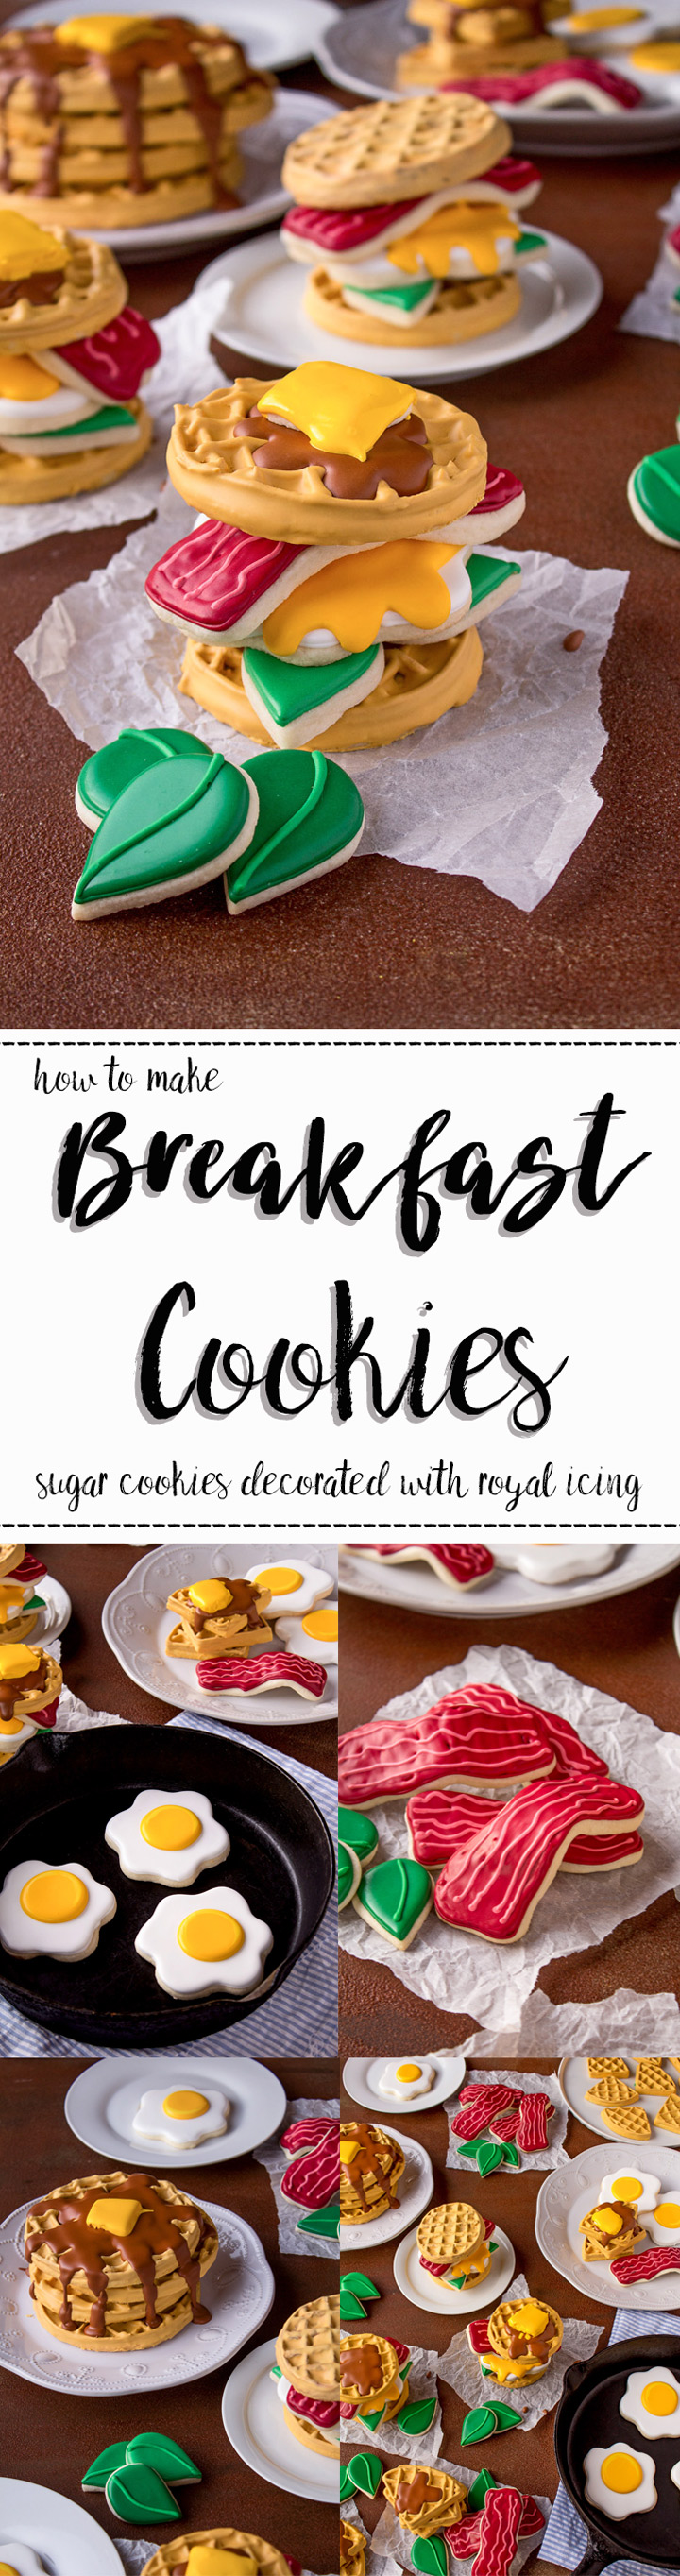 Breakfast Cookies-How to Make a Display You'll Love Using these Tutorials | The Bearfoot Baker